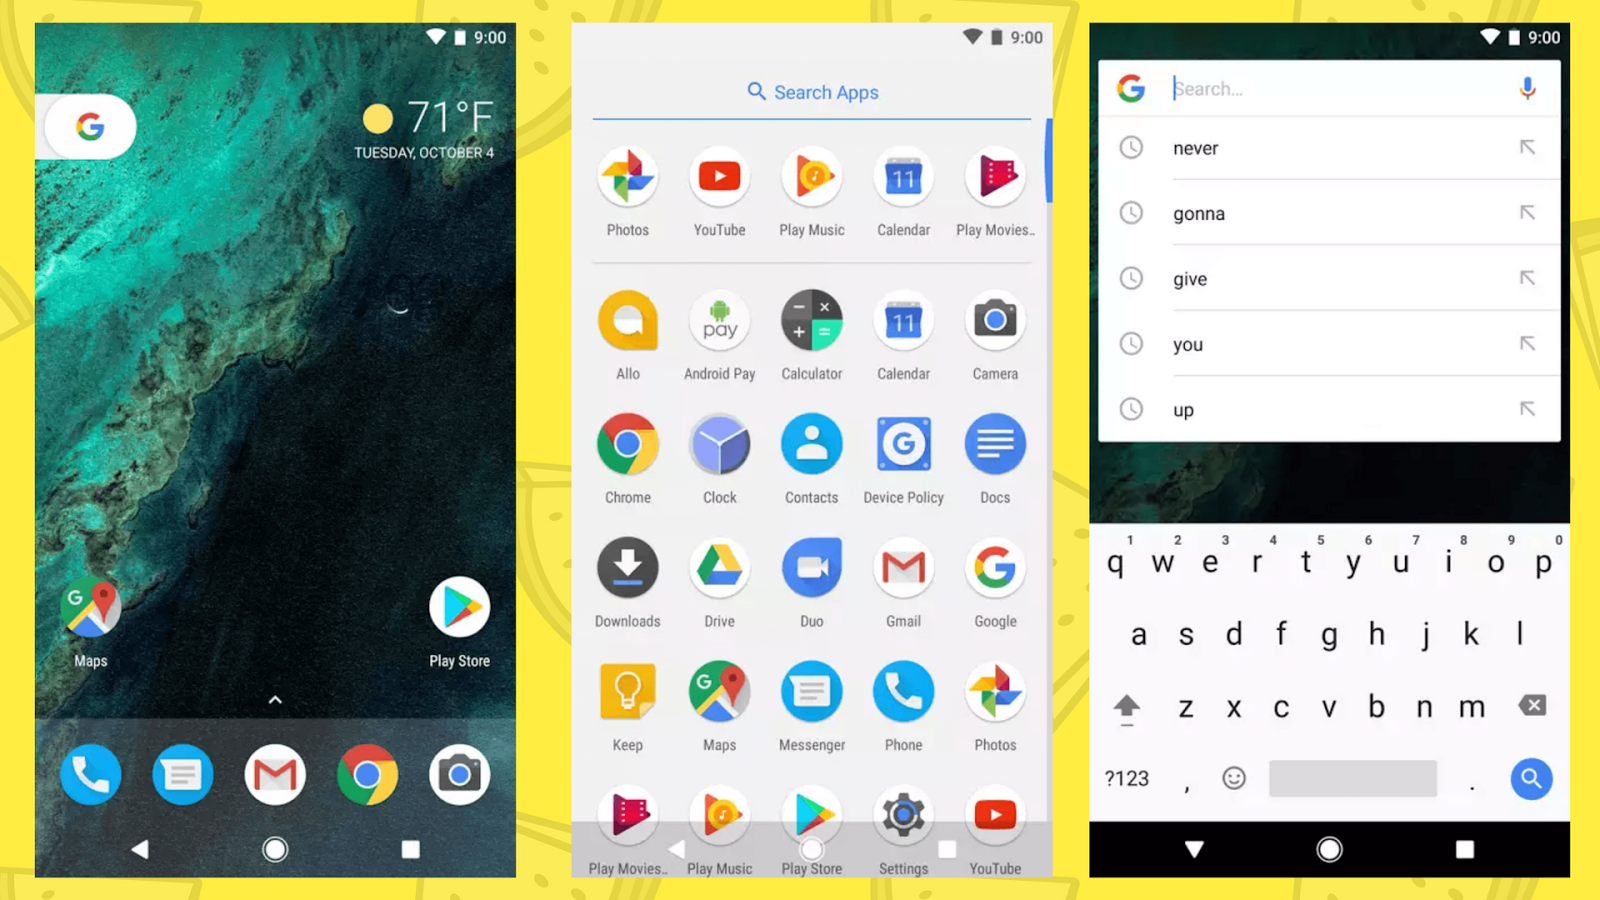 android launchers,launchers android 2015,launchers android 2016,launchers android 2017,best android launchers 2016, best android launchers 2017, Android marshmaallow, nougat, nougat red, Apex launcher, asap launcher, Nova launcher, nova launcher prime, evie launcher, pixel launcher, google pixel launcher, M launcher, google now launcher, google now support, google now alternatives, android alternative launchers, Best android launchers 2017, minimilastic launcher